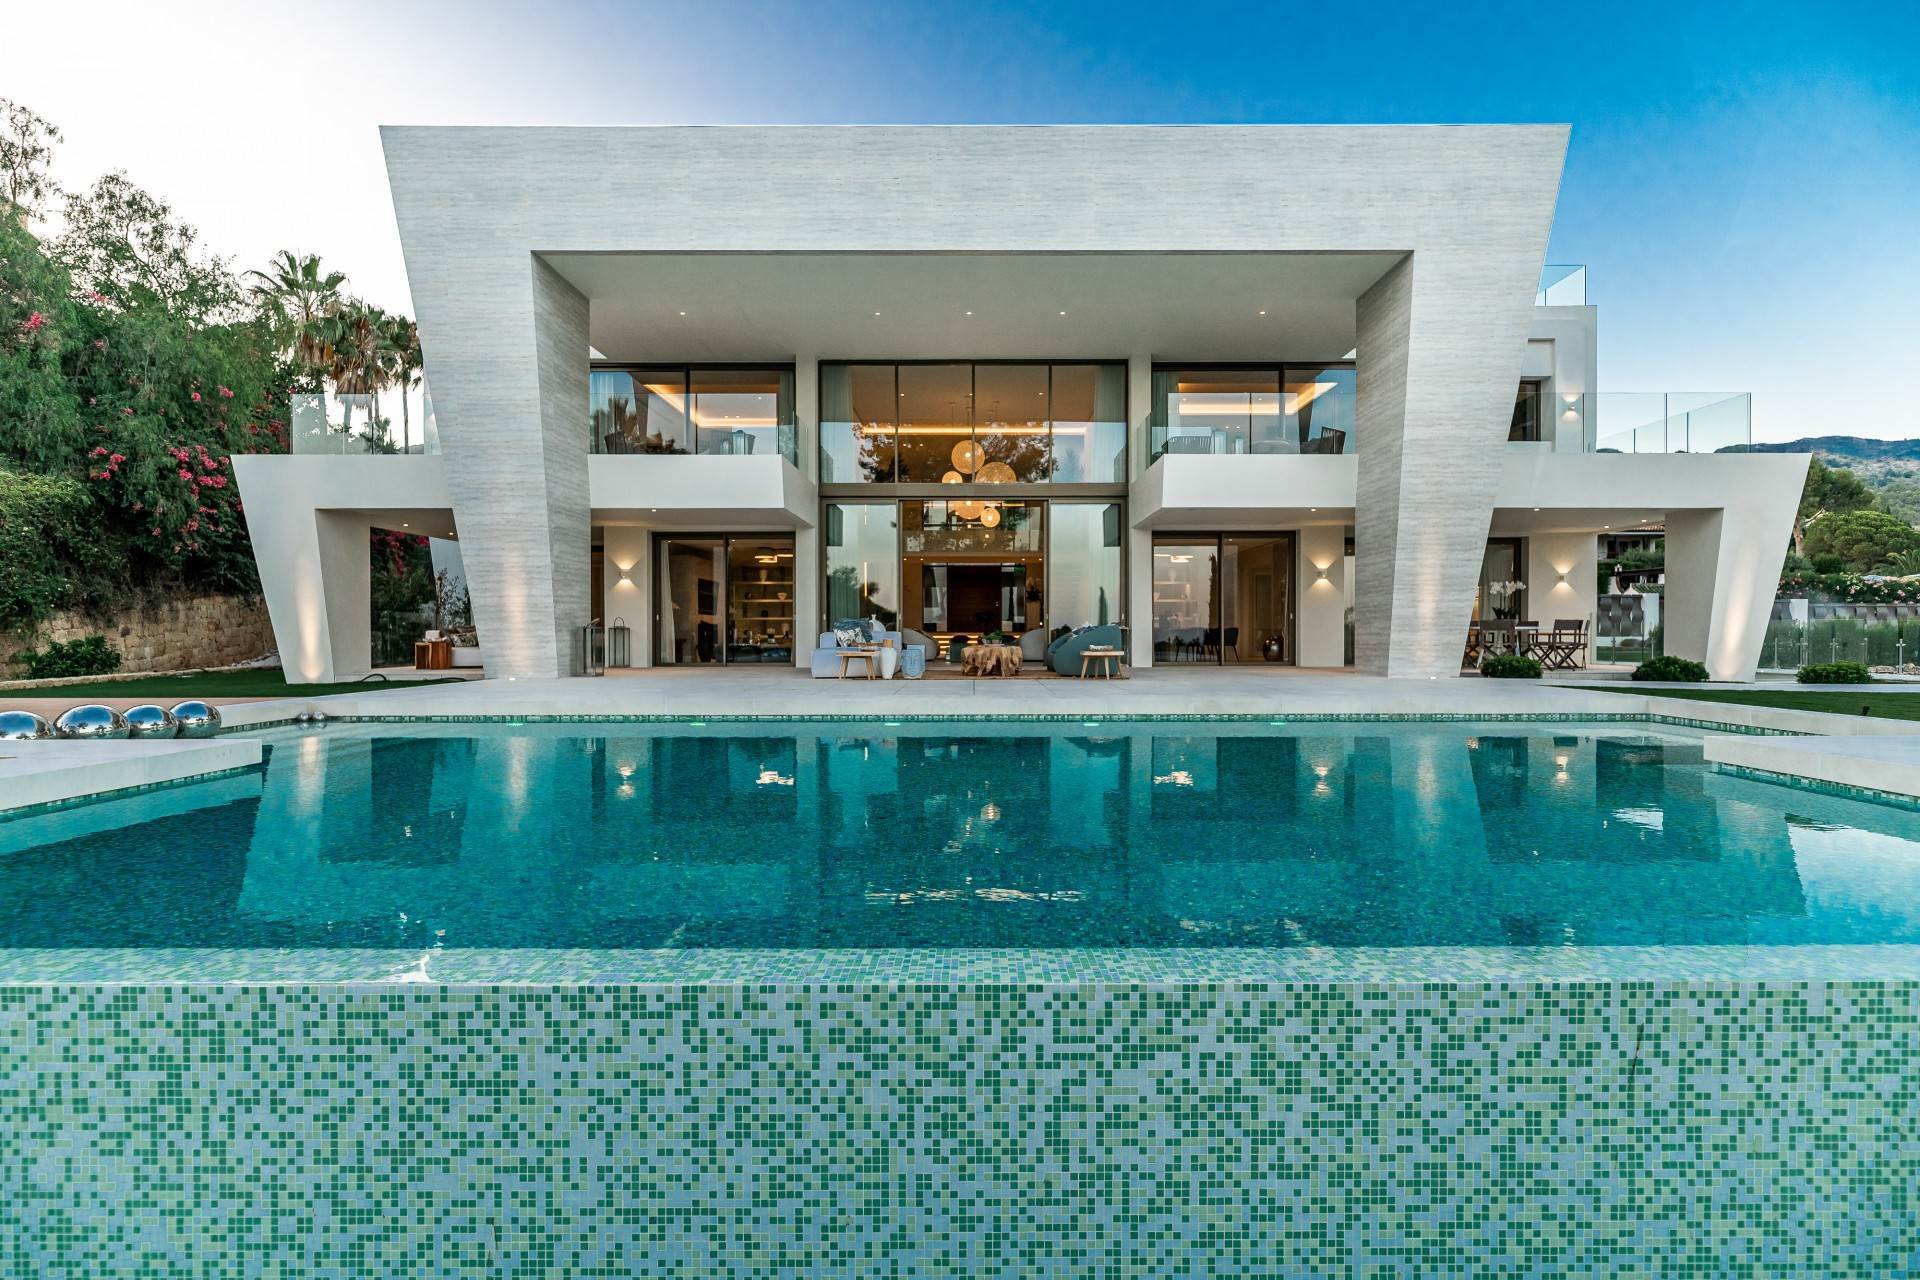 Single Family Home for Sale at Superb Villa in the Golden Mille of Marbella Marbella, Malaga,29600 Spain